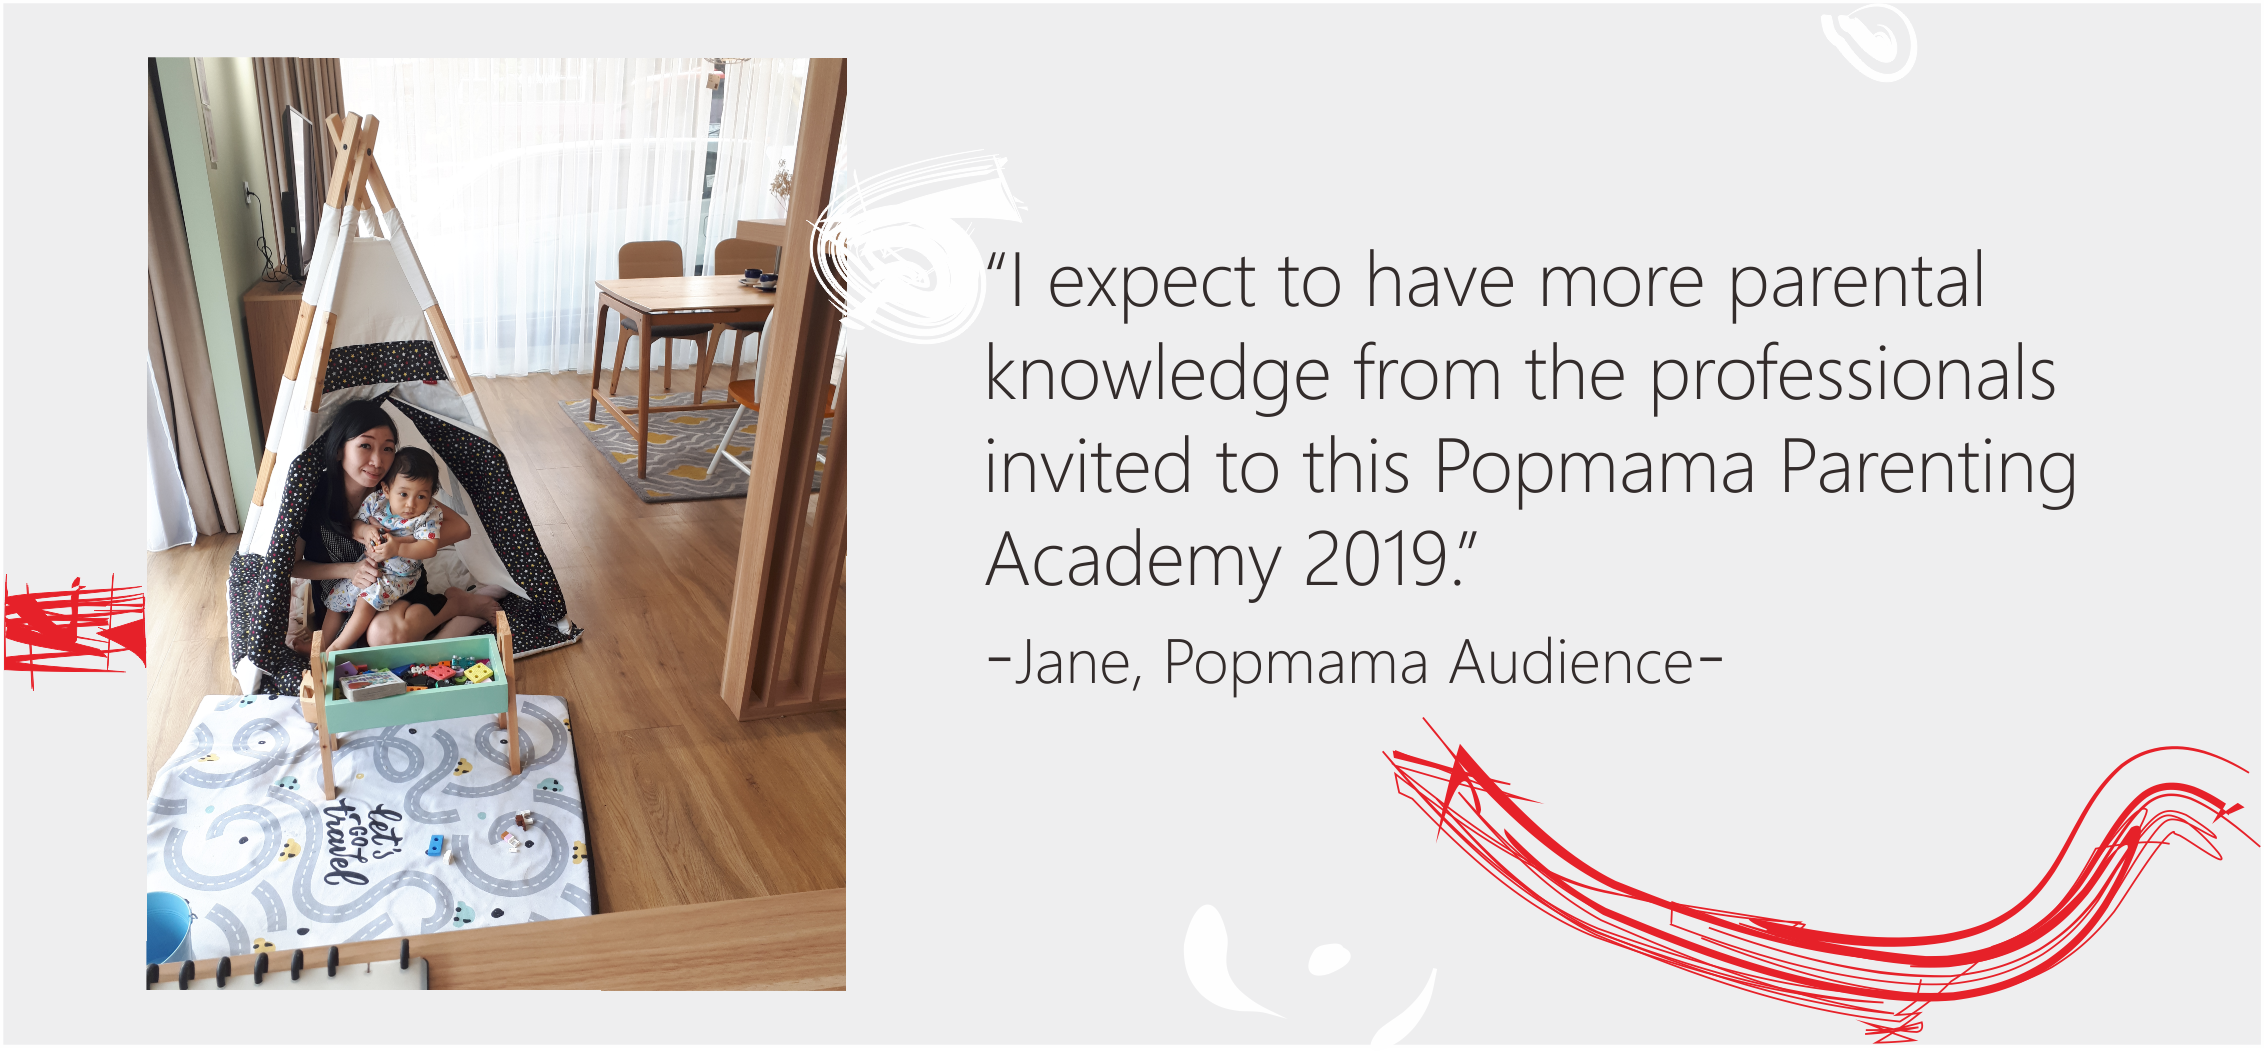 Here's What Popmama Audience Says About the Upcoming Popmama Parenting Academy 2019